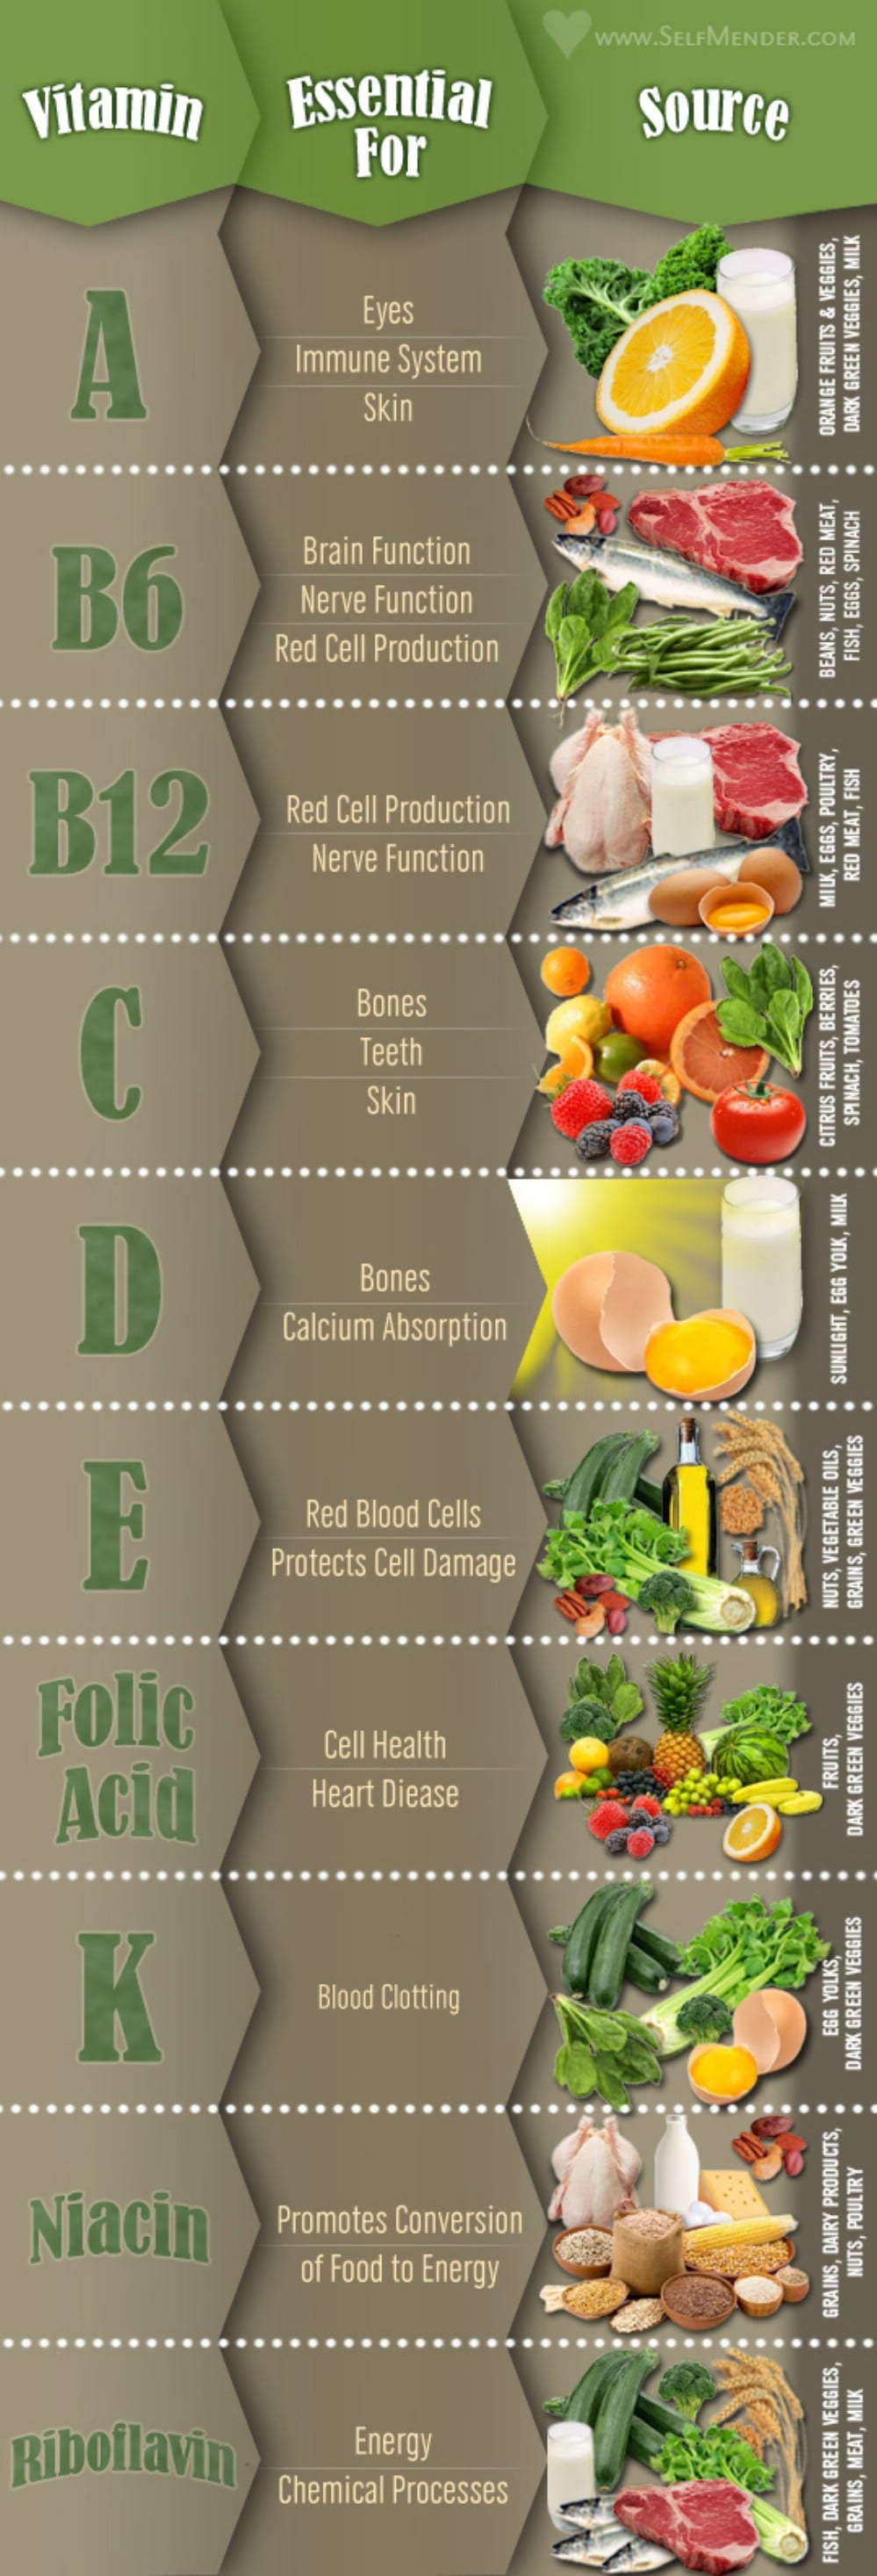 Where to find Essential Vitamins